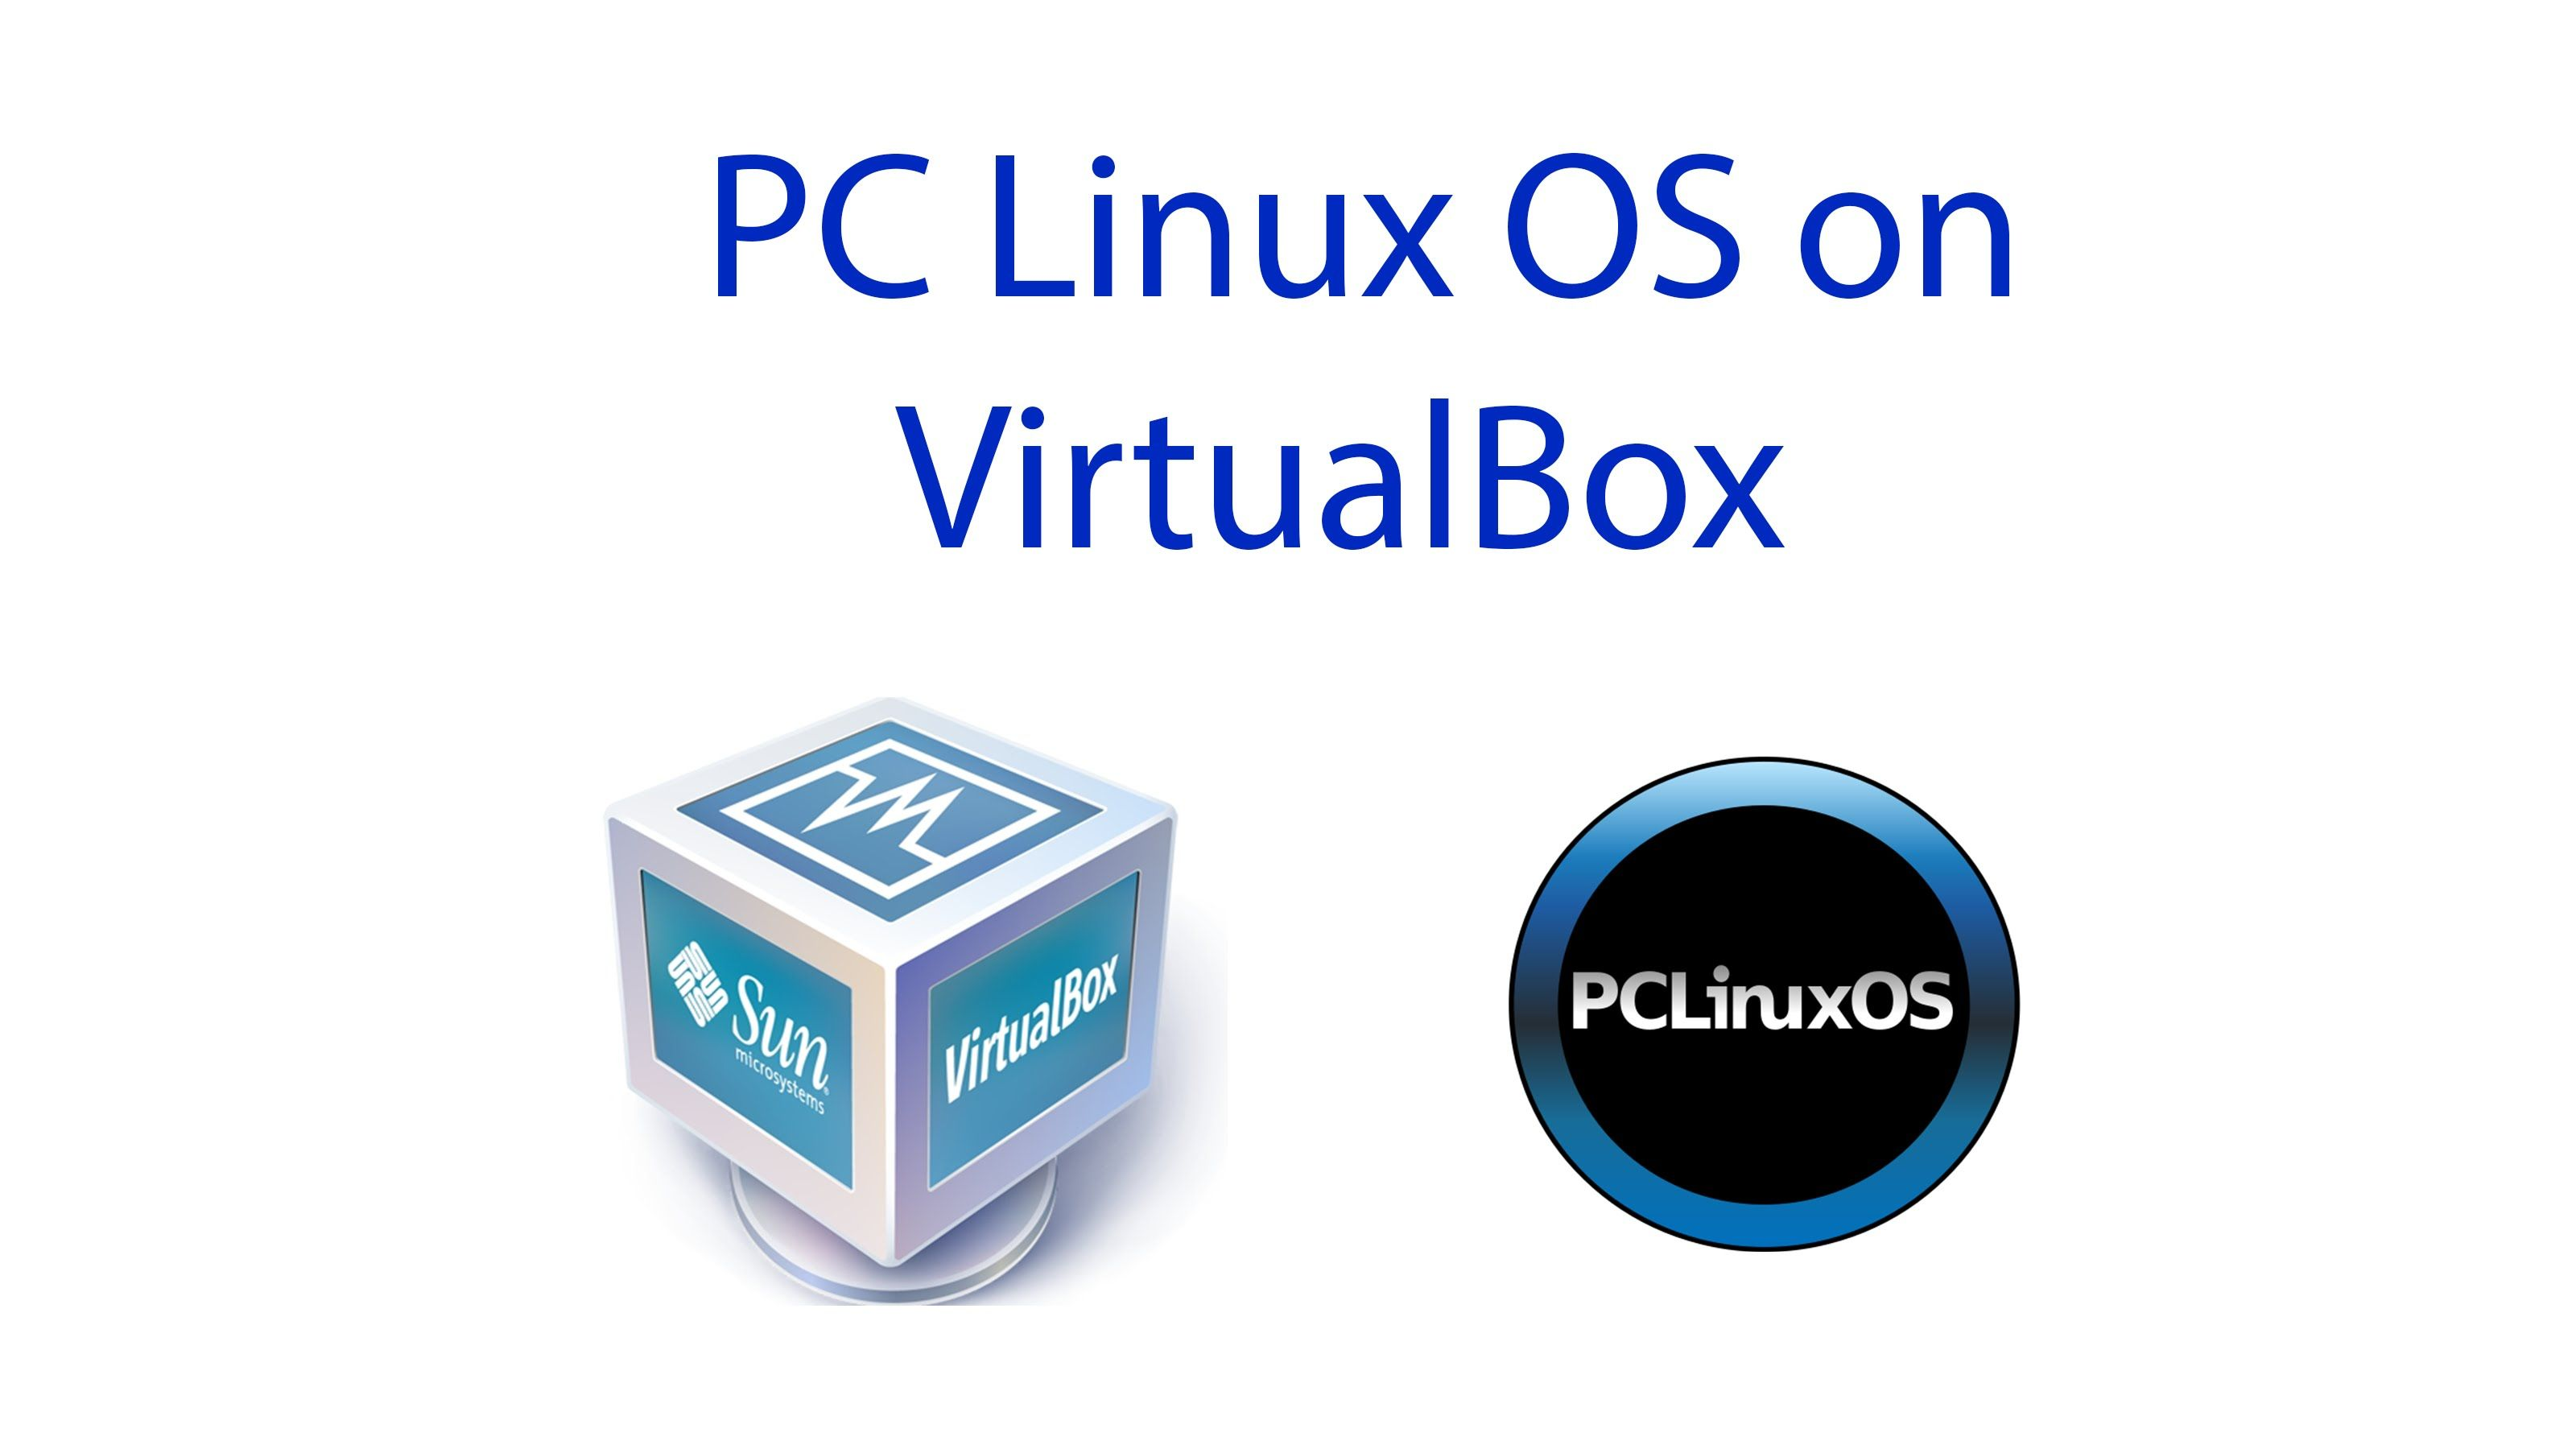 How to Install PC Linux OS & Guest Additions on Virtual Box